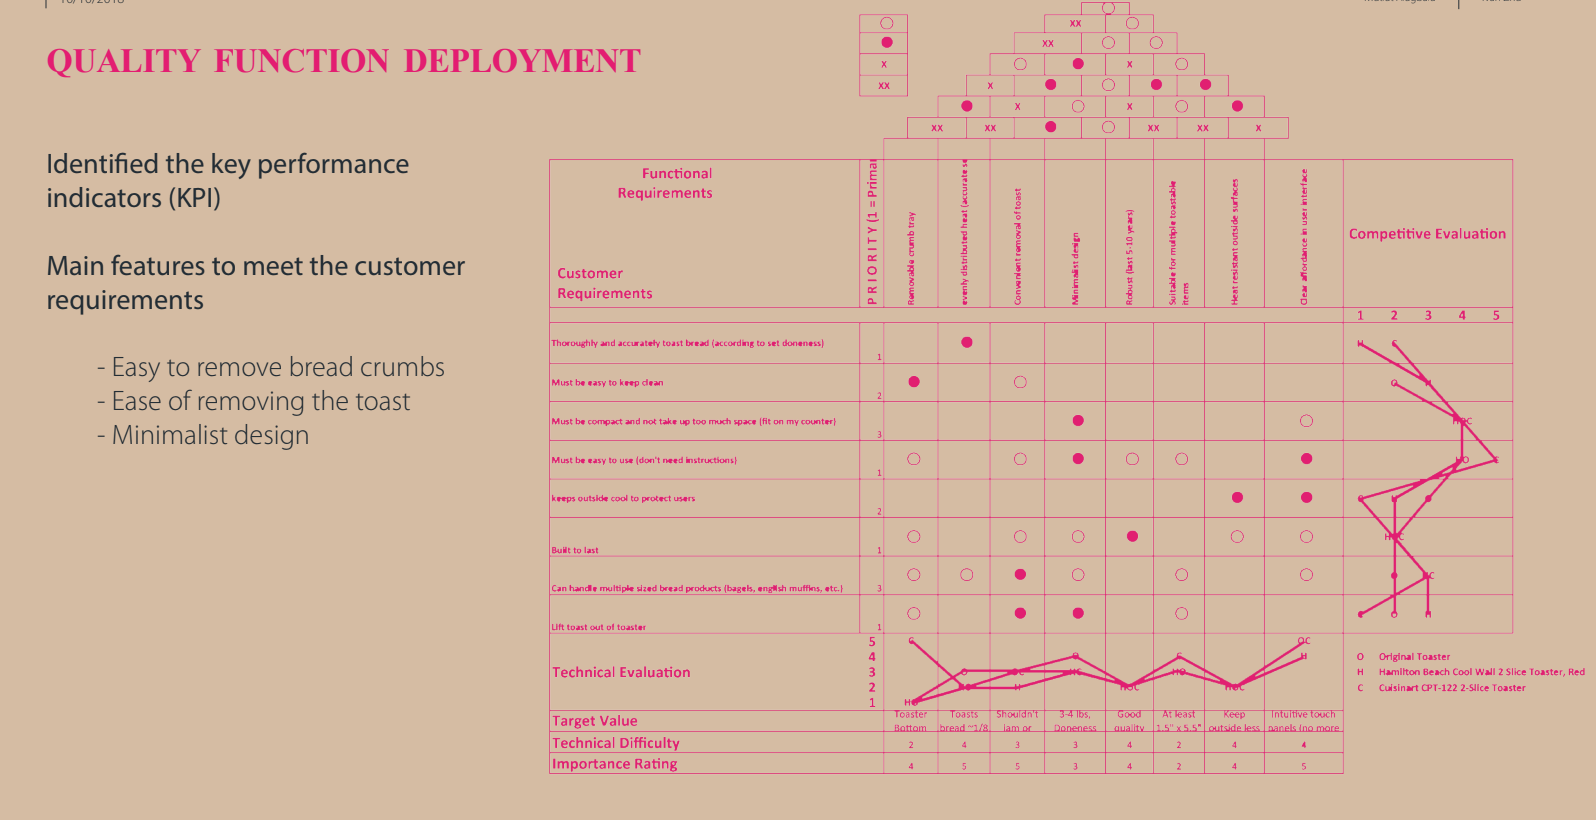 - The Quality Functional Deployment mapped the customer's specifications against the technical specifications to determine suitable Key Performance Indicators that assessed the effectiveness of the redesign